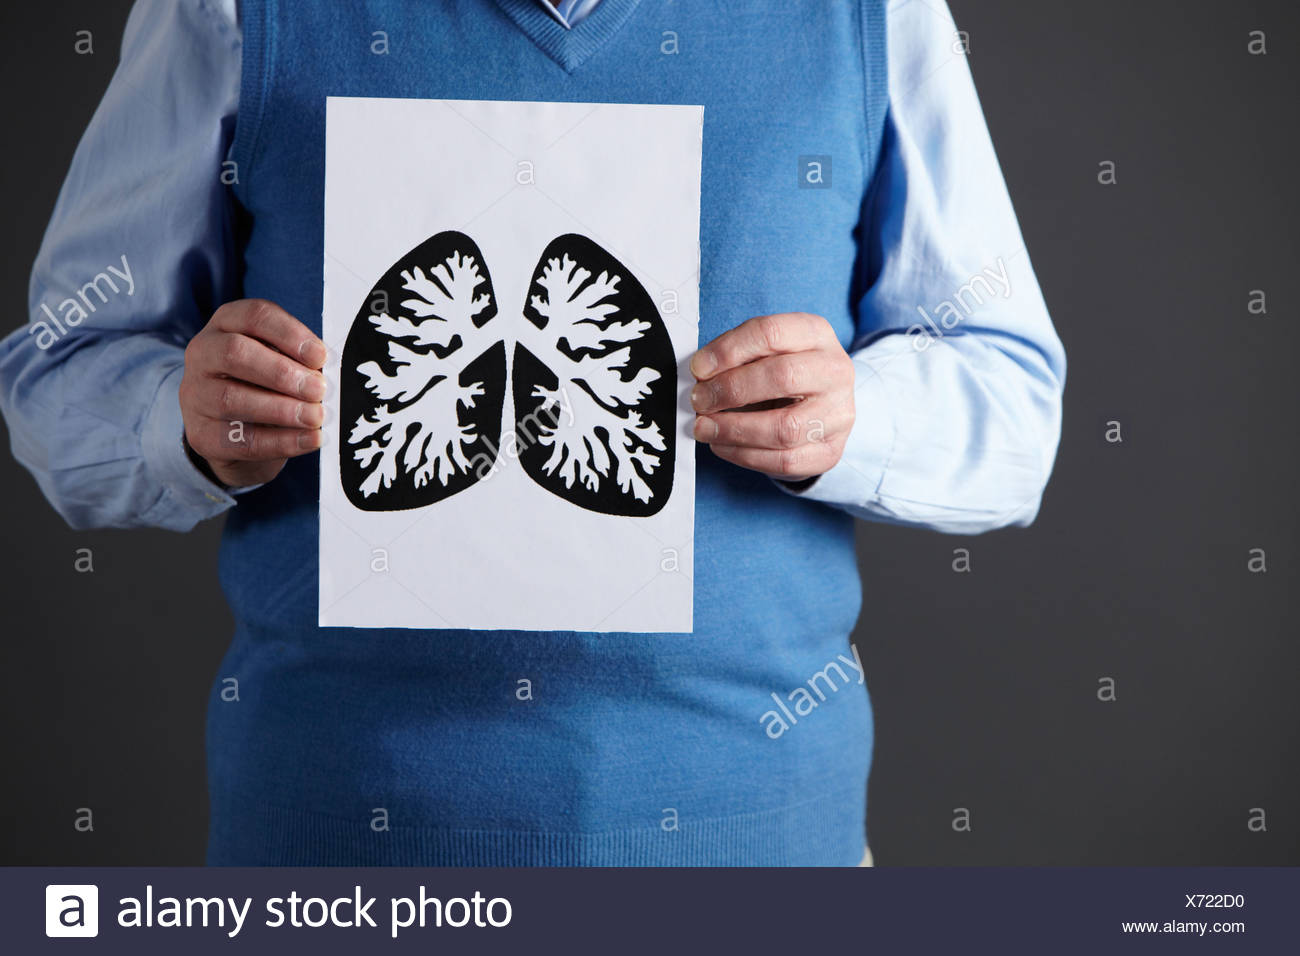 Senior man holding ink drawing of lungs - Stock Image